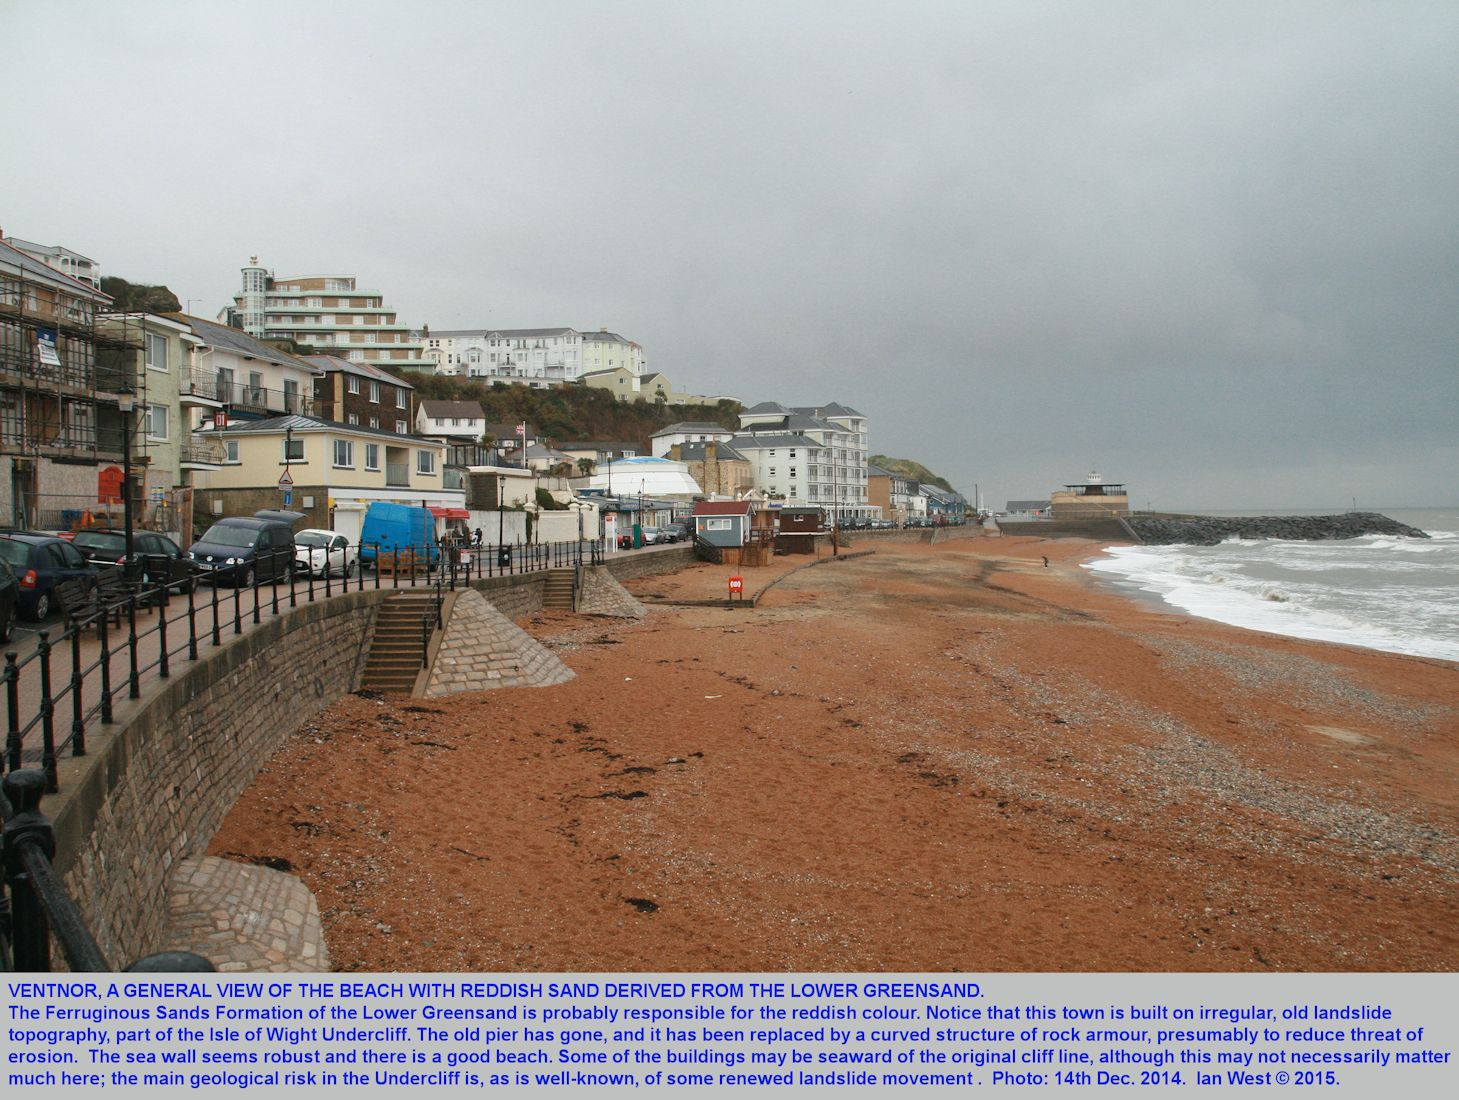 A general view of Ventnor Beach, Isle of Wight, reddish in colour because of supply of sand from the Ferruginous Sands Formation, Ian West, 14th December 2014